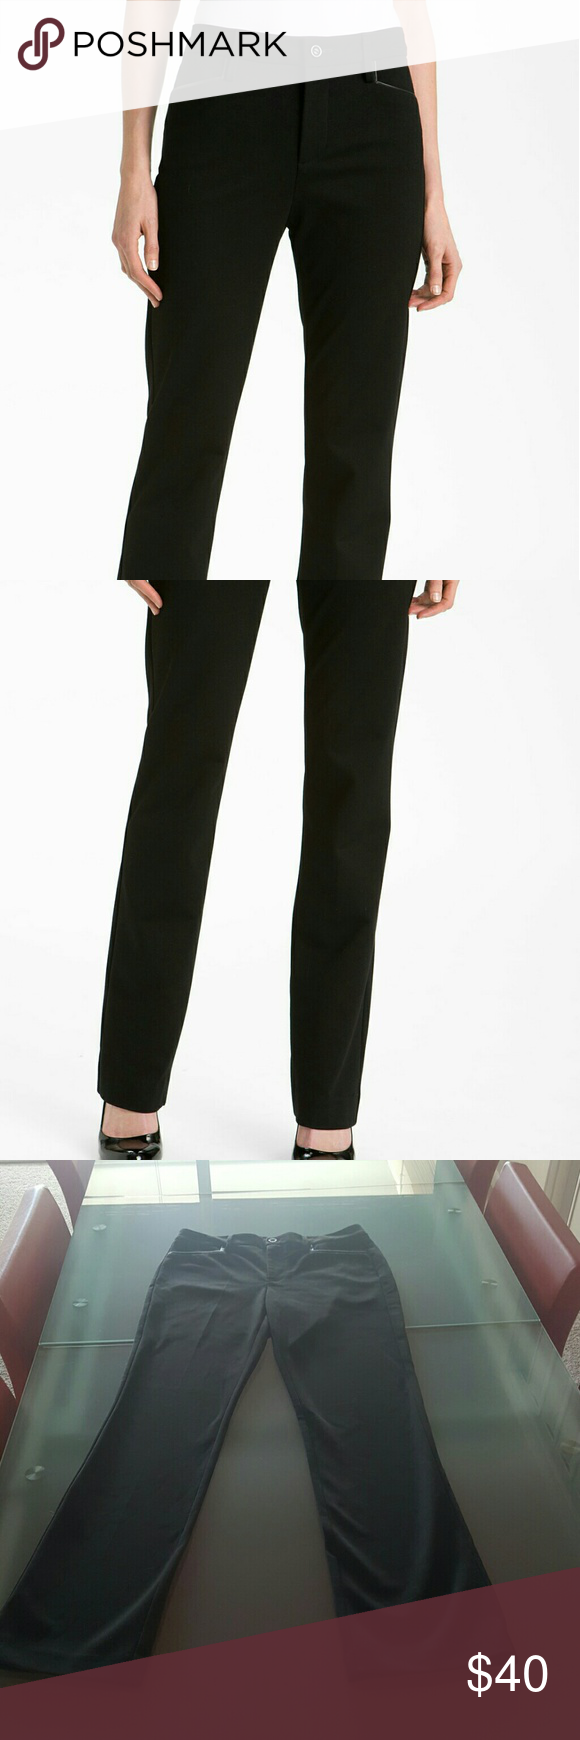 NYDJ- Blk women s trousers with faux leather trim. Nordstrom WebsiteWomen s  ... 3ef05f1a4c